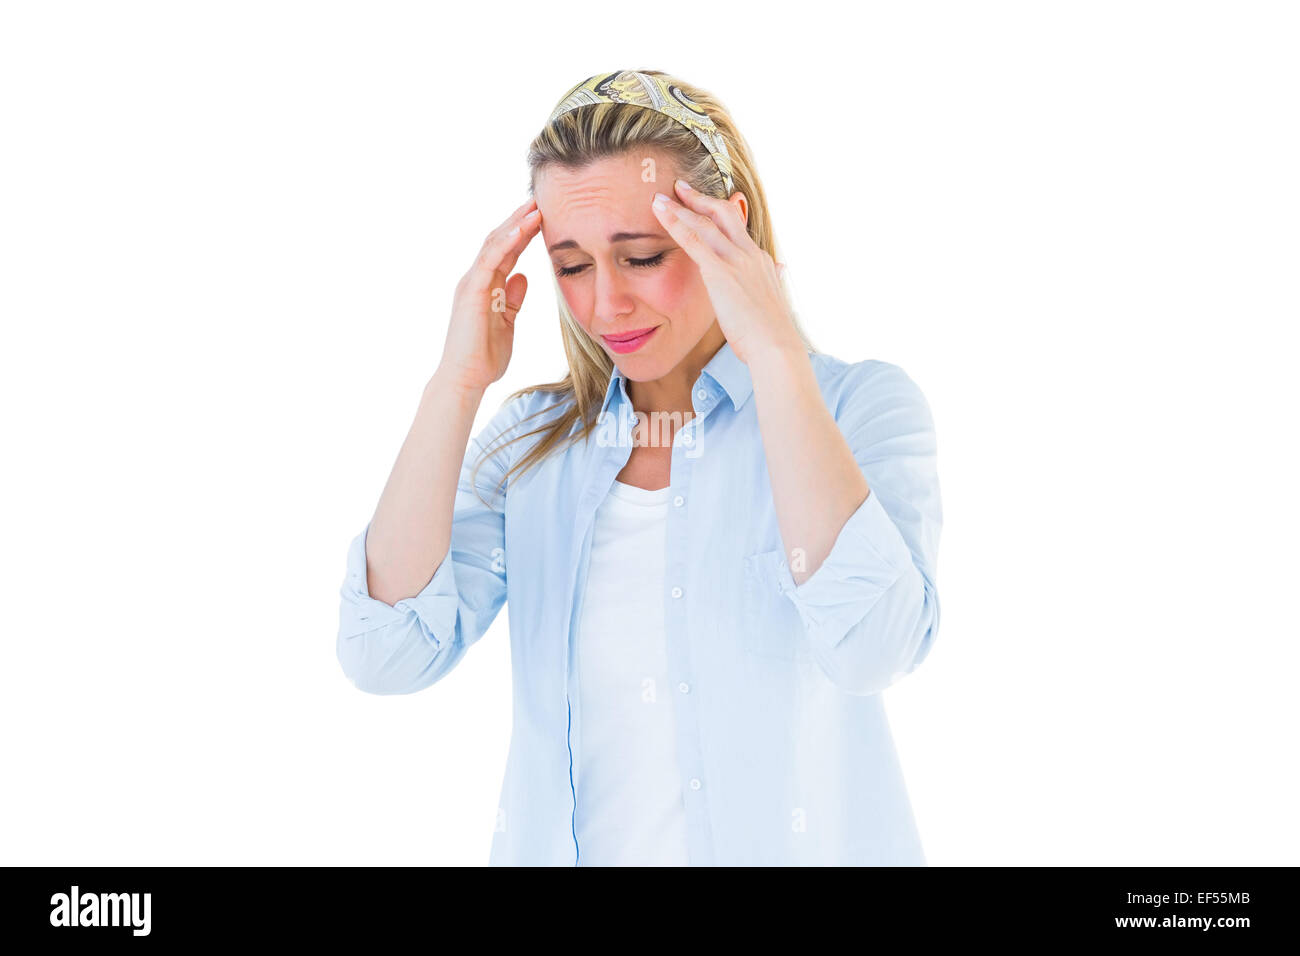 Pretty blonde grimacing and getting a headache - Stock Image